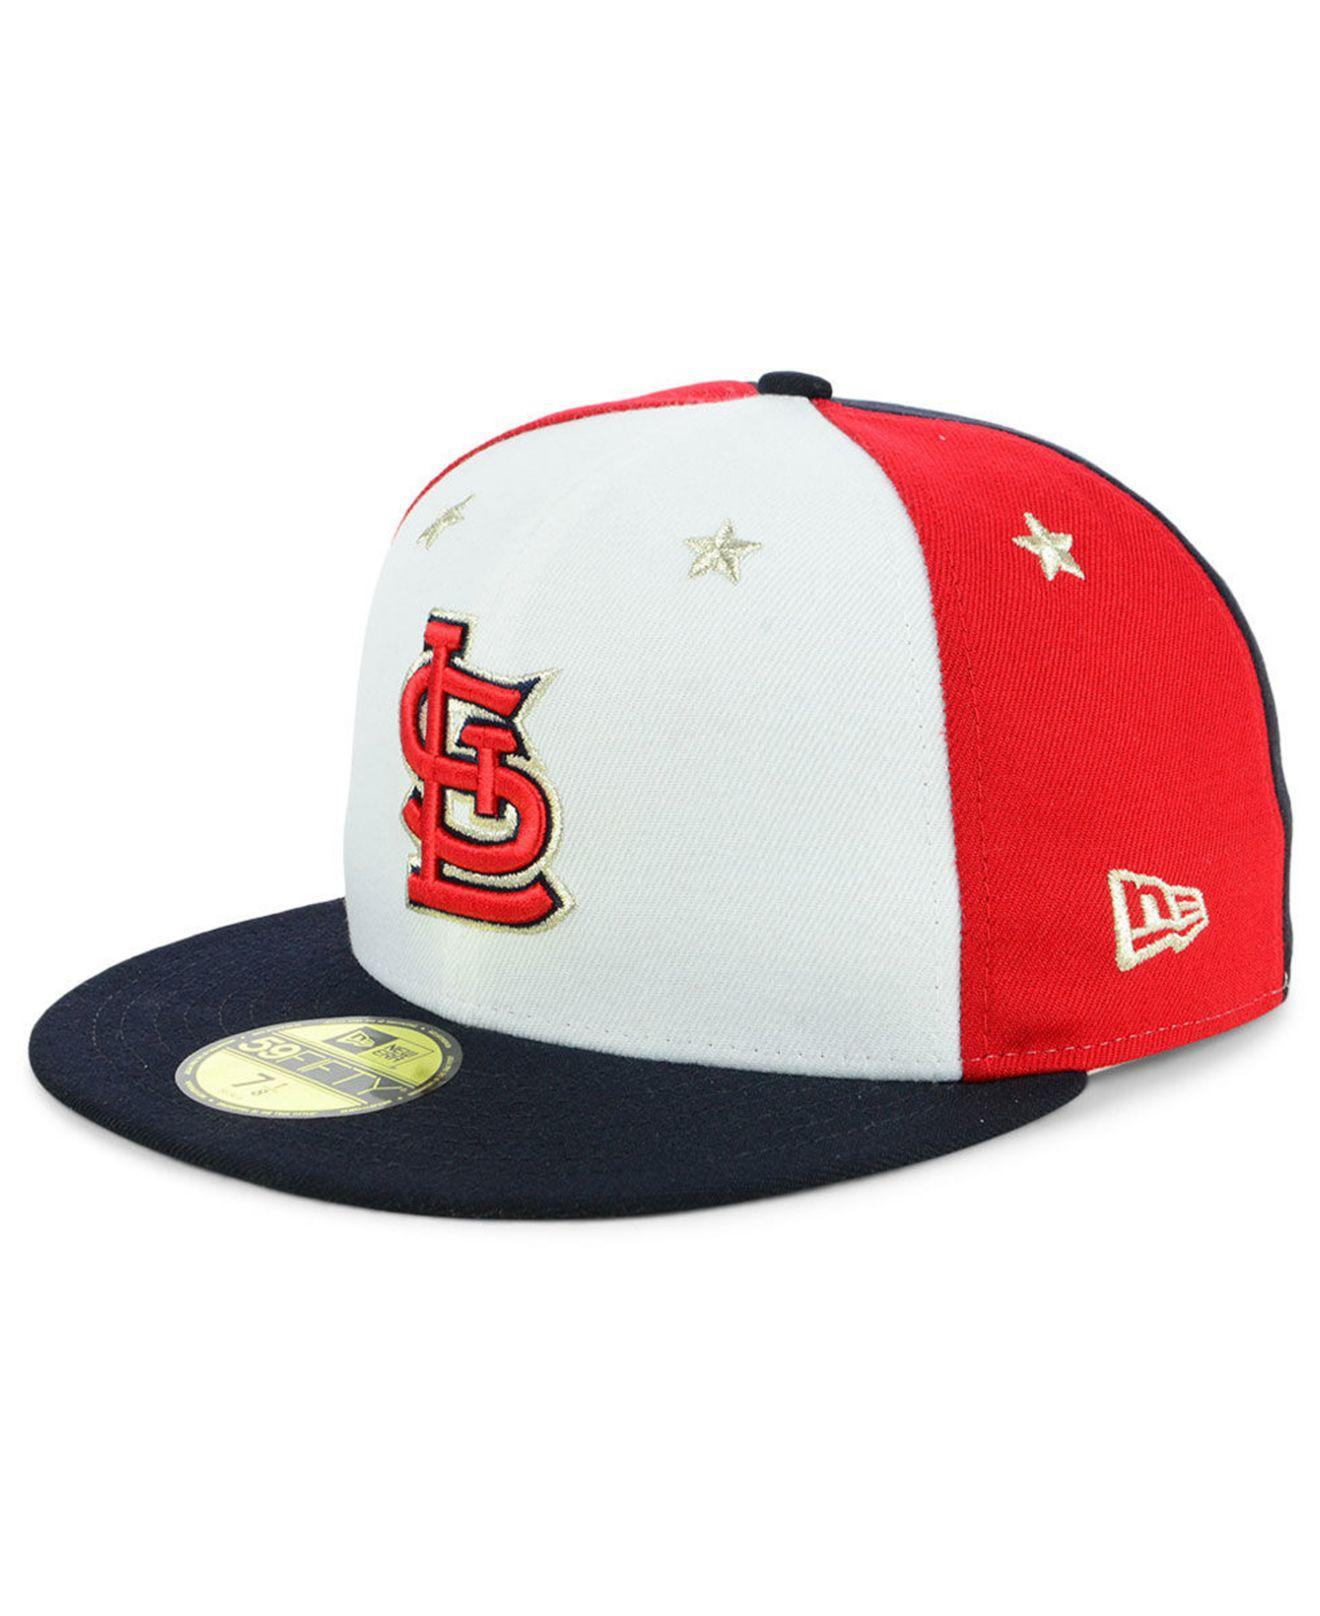 promo code 6f968 ec989 wholesale new era st louis cardinals red prolight 2018 bp jr 9twenty youth adjustable  hat 2e222 5c845  cheap st. louis cardinals all star game patch 59fifty ...